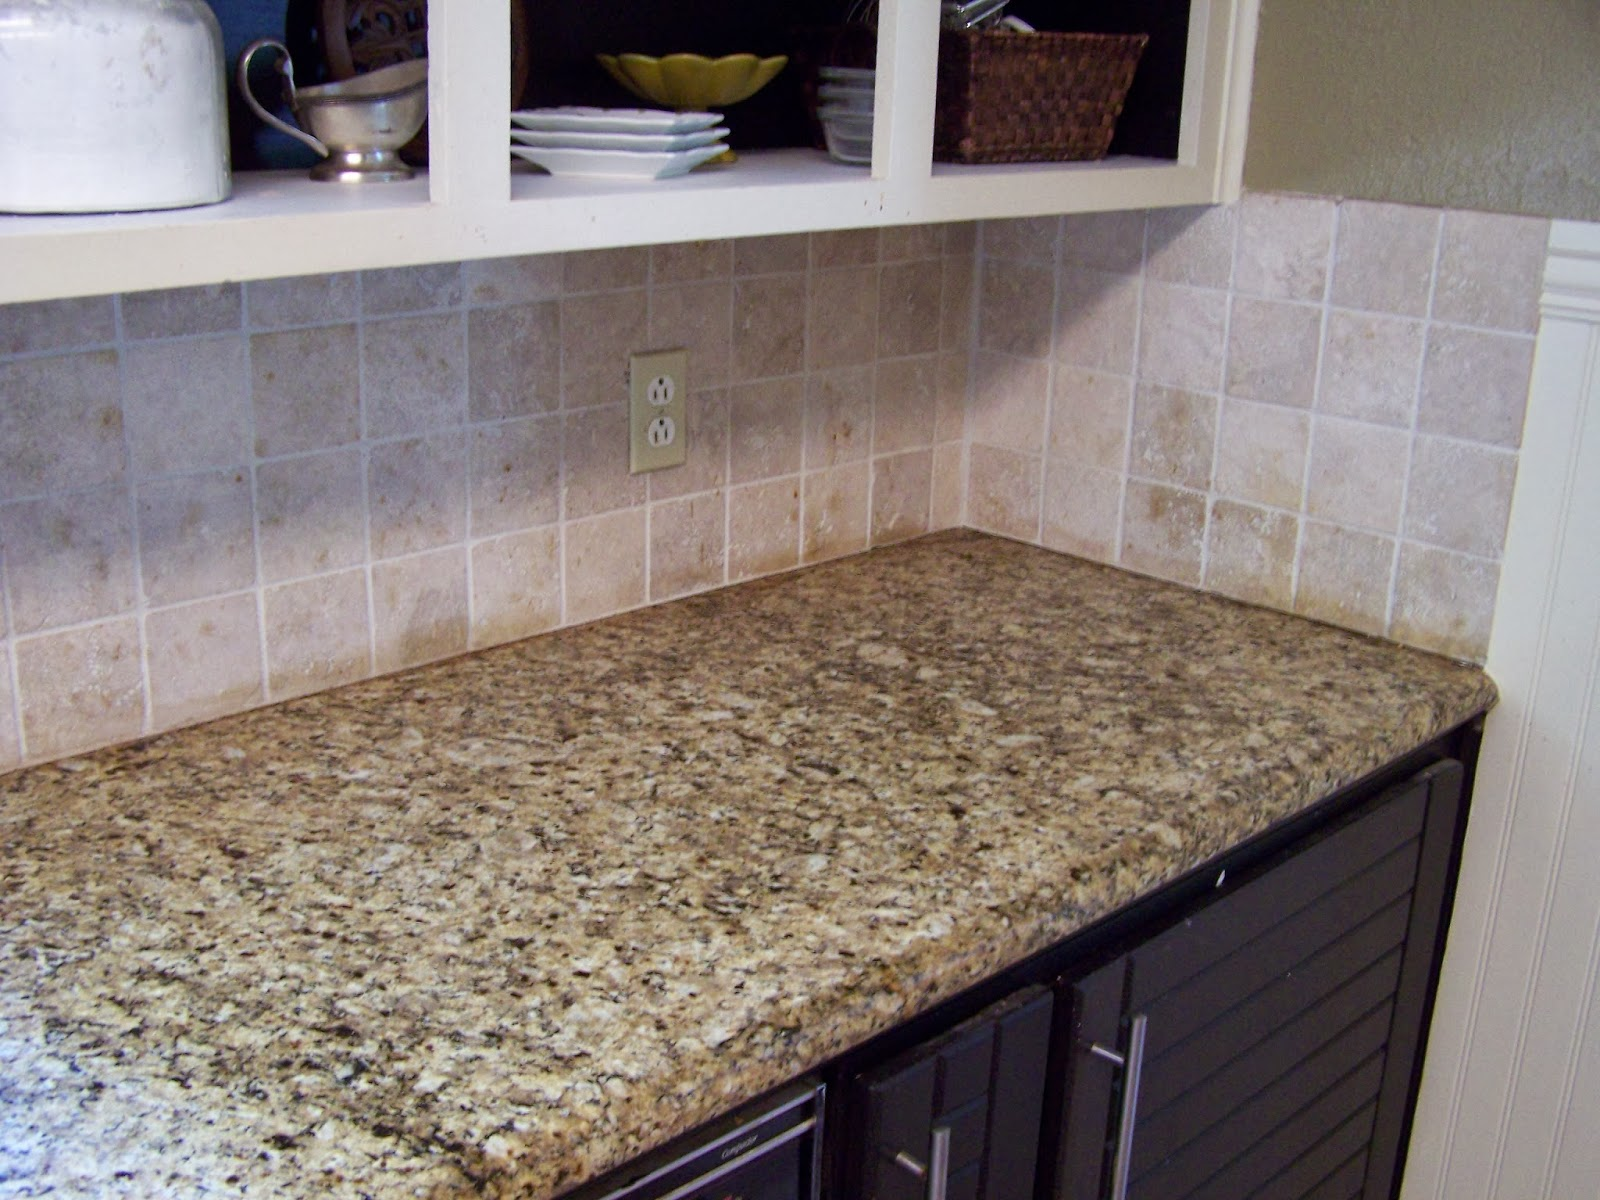 Can You Paint Over Kitchen Tiles